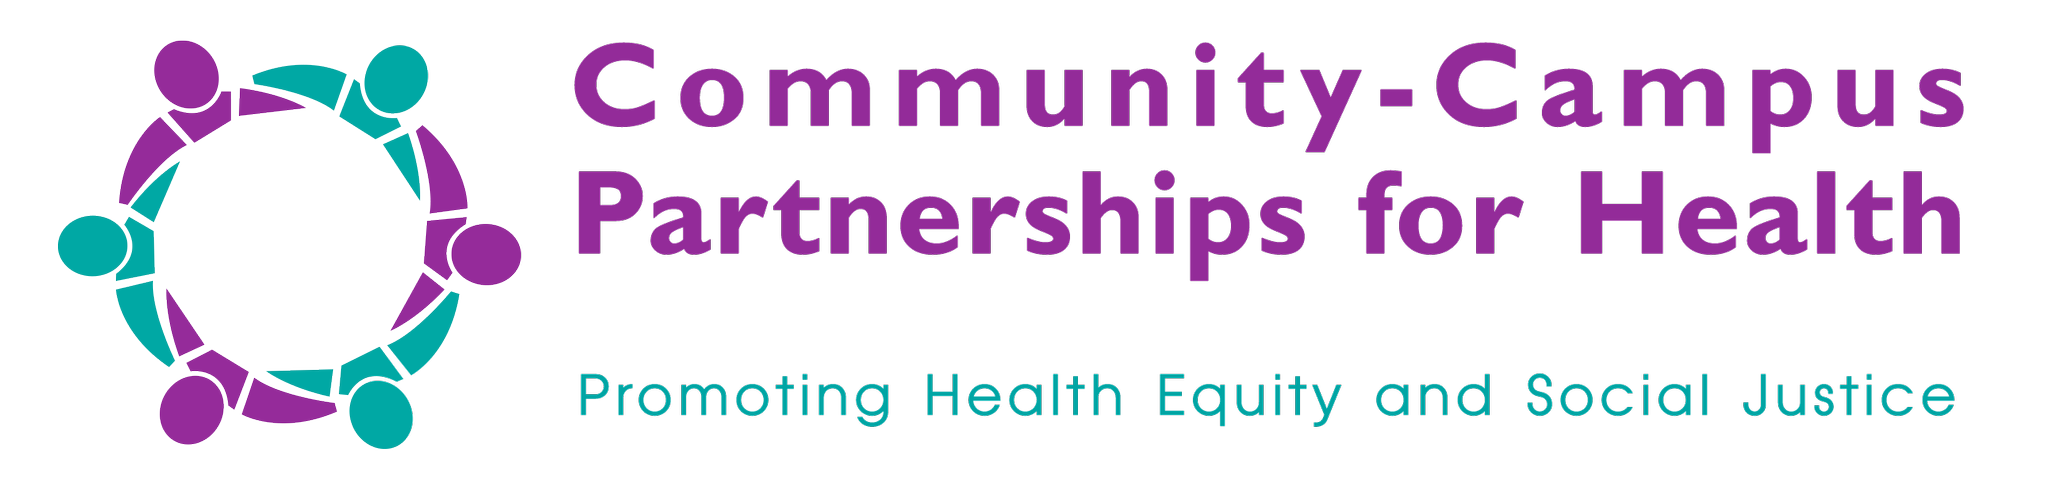 Community-Campus Partnerships for Health